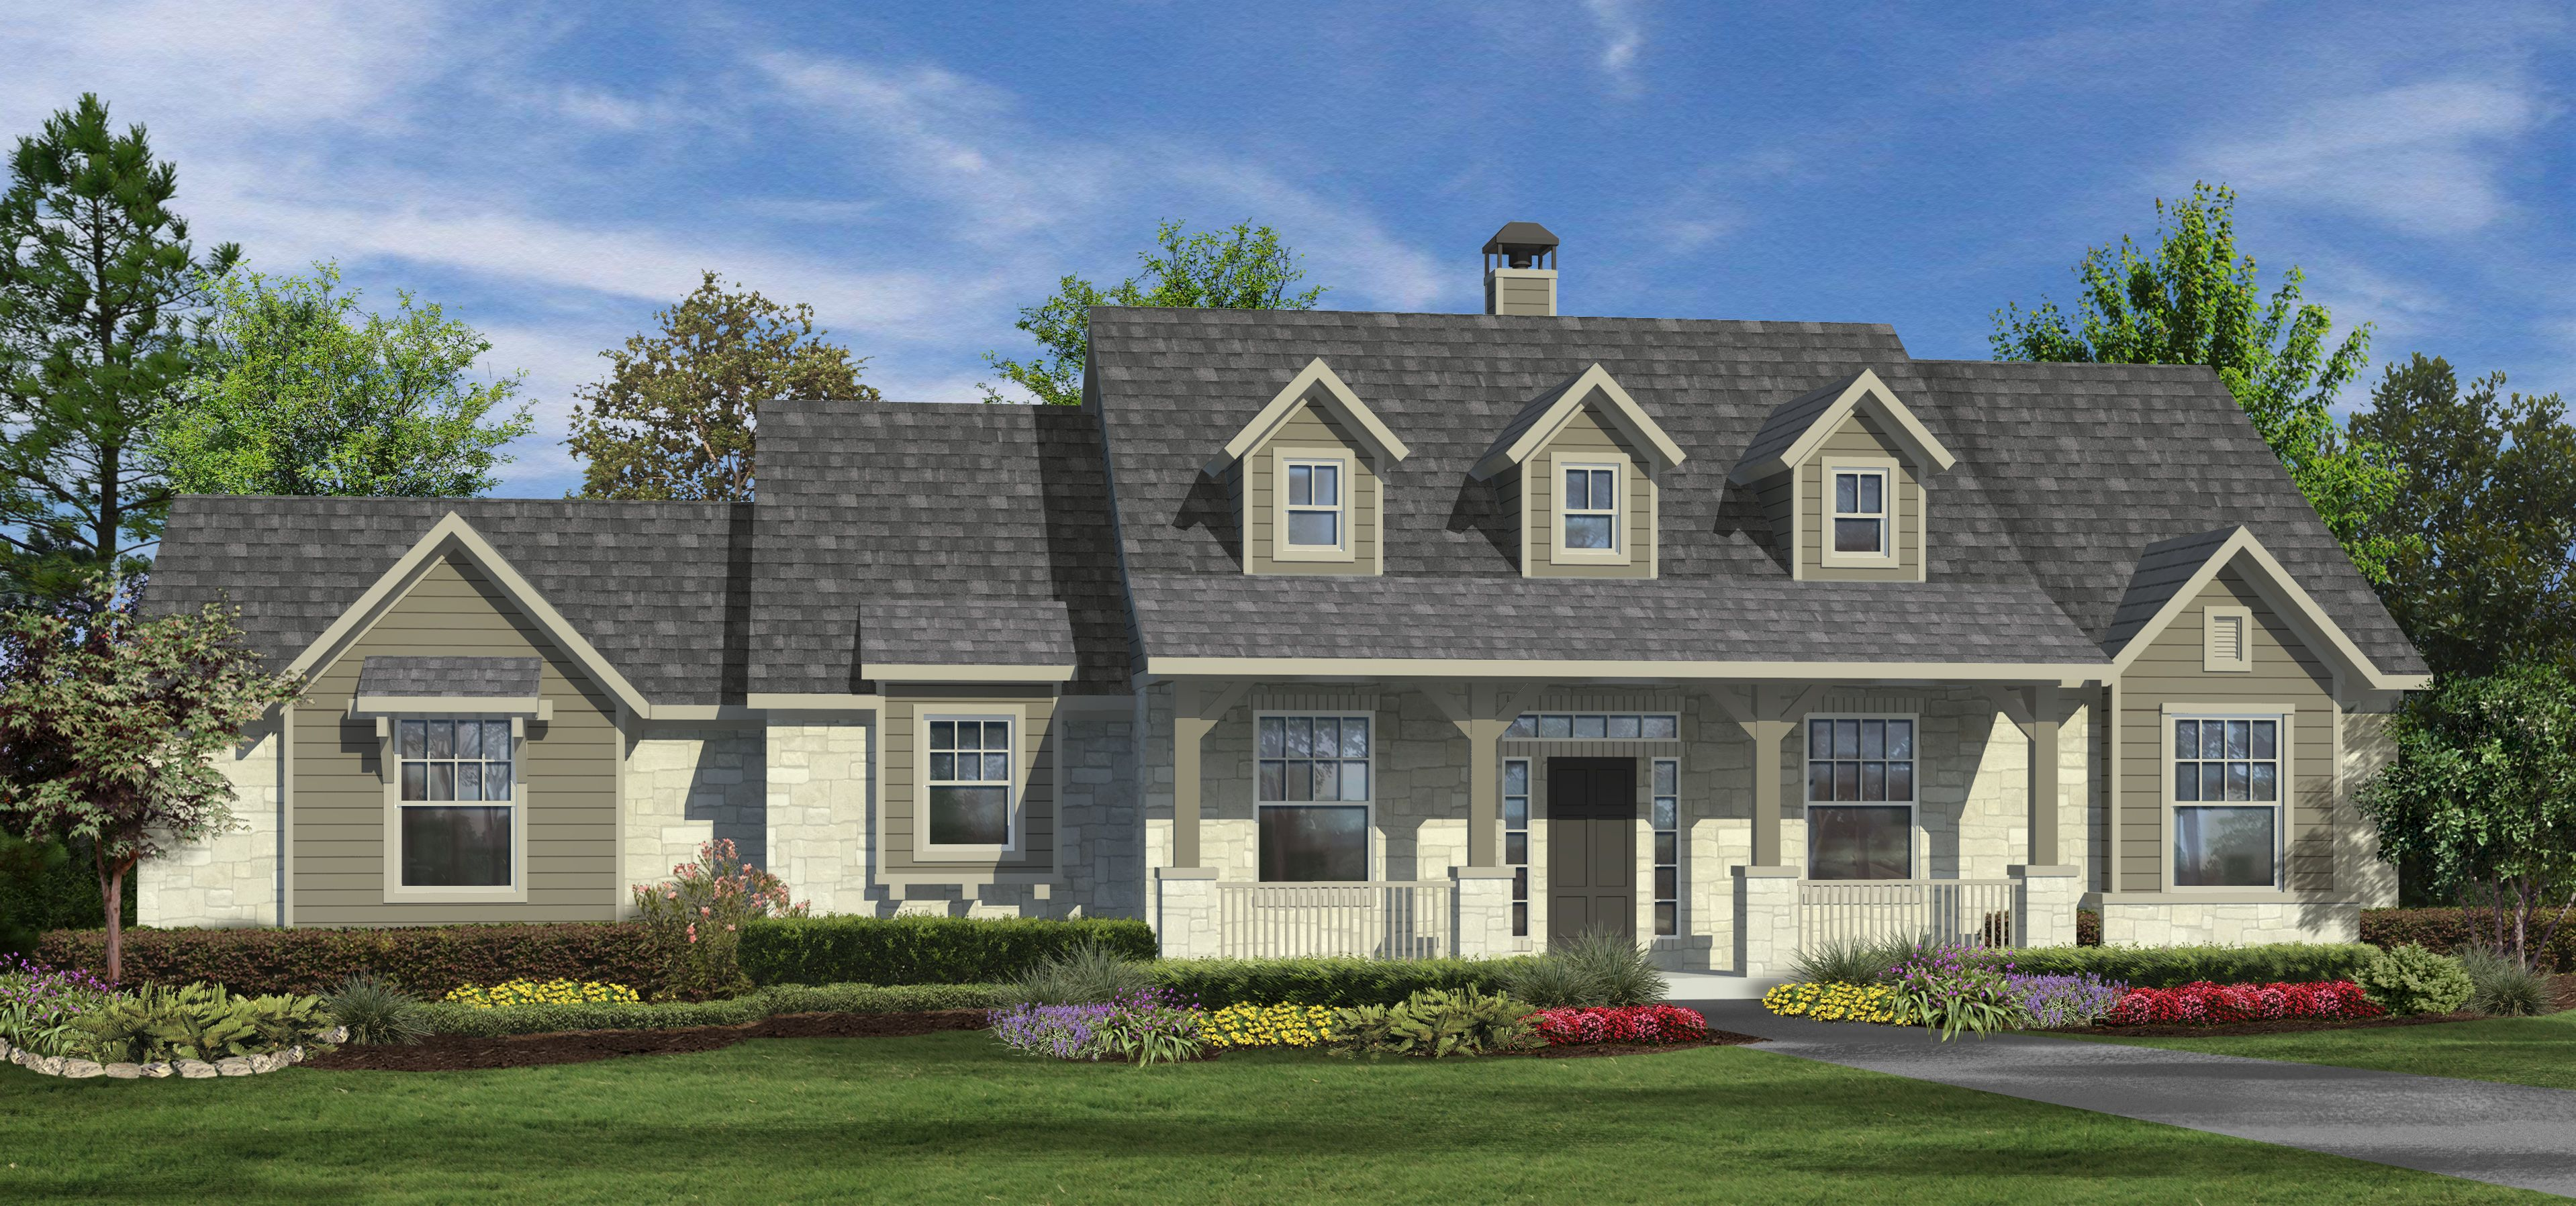 The Hearthstone   Square Foot House Plans Design Tech Homes - Design tech homes pricing